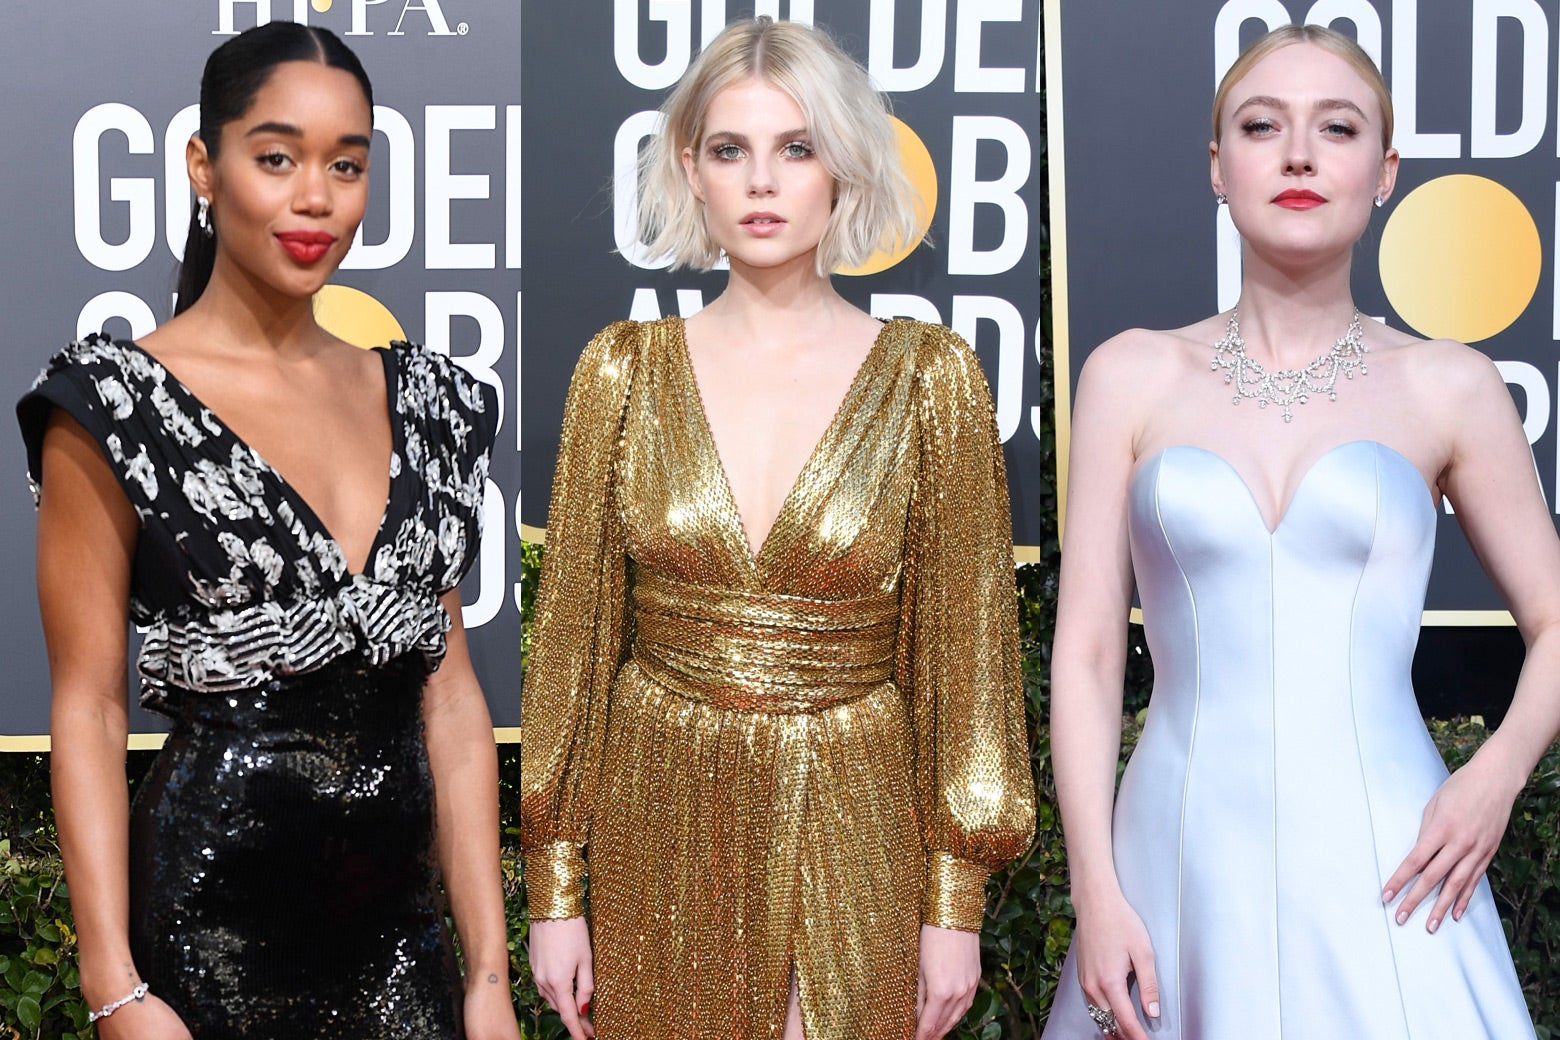 Laura Harrier, Lucy Boynton, and Dakota Fanning at the 2019 Golden Globes.